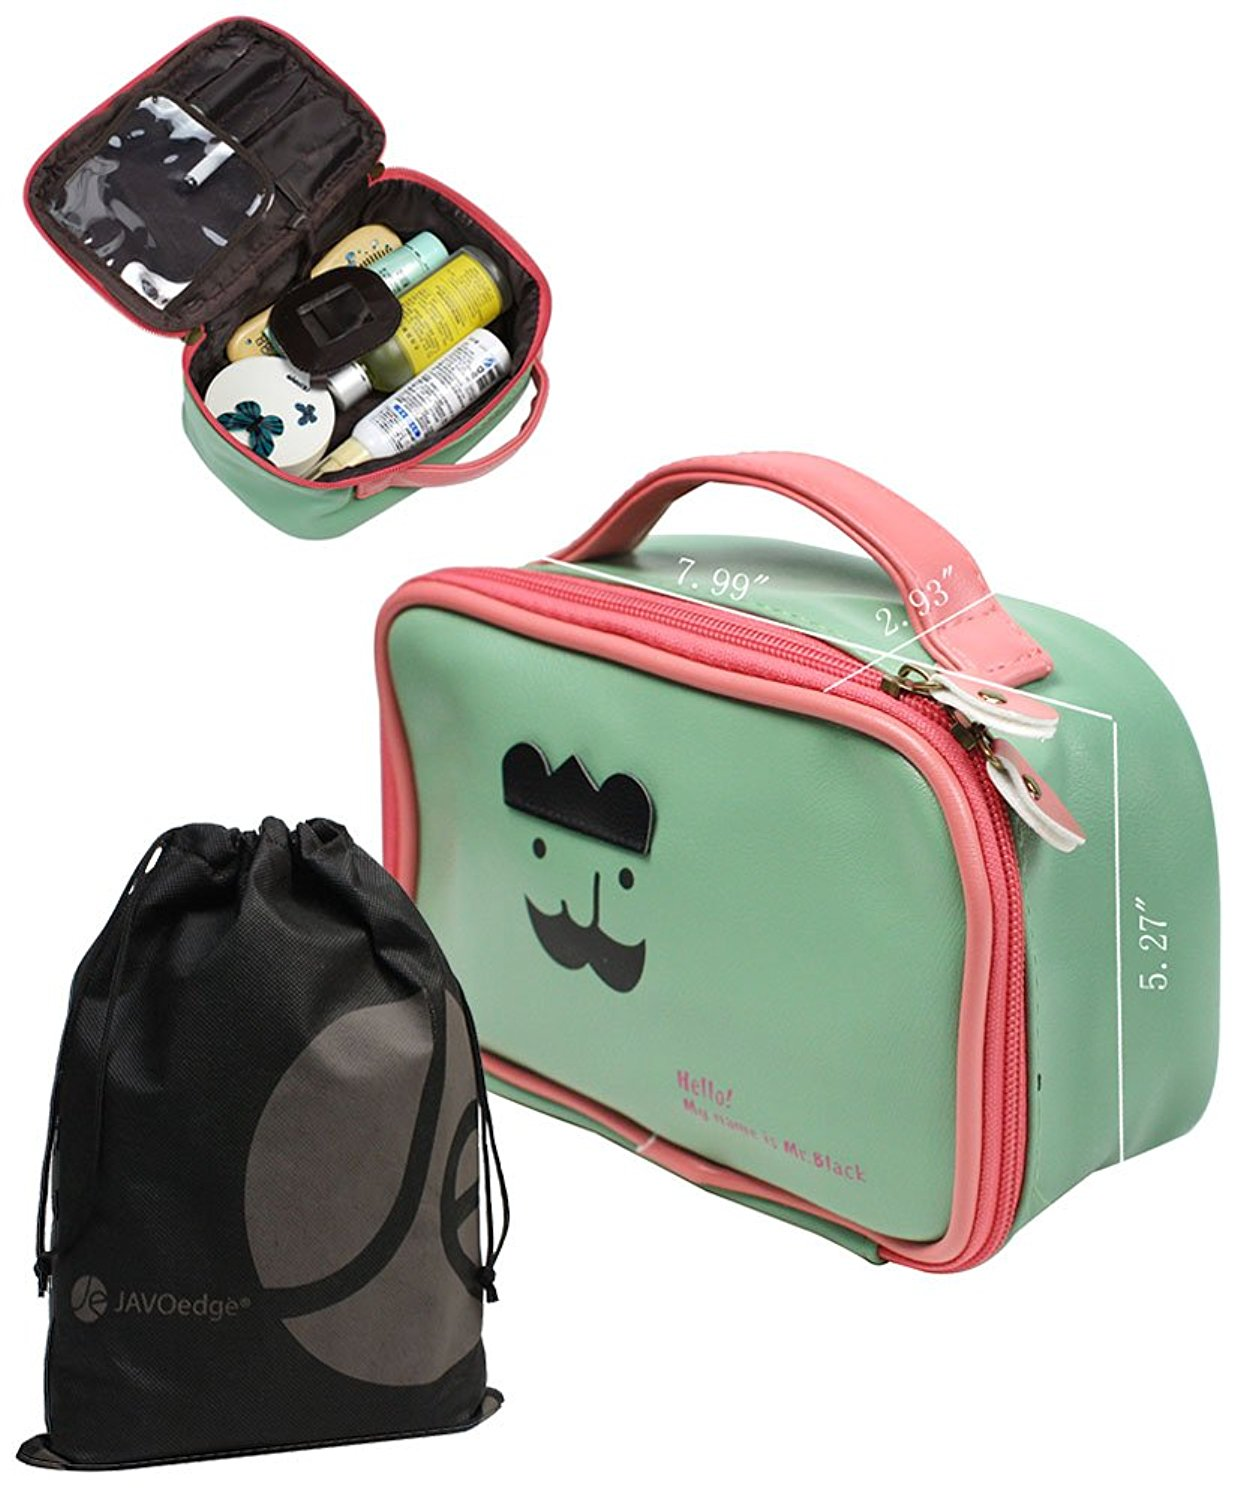 Zipper Travel Bathroom, Toiletry and Cosmetic Bag with Bonus Reusable Drawstring Storage Bag